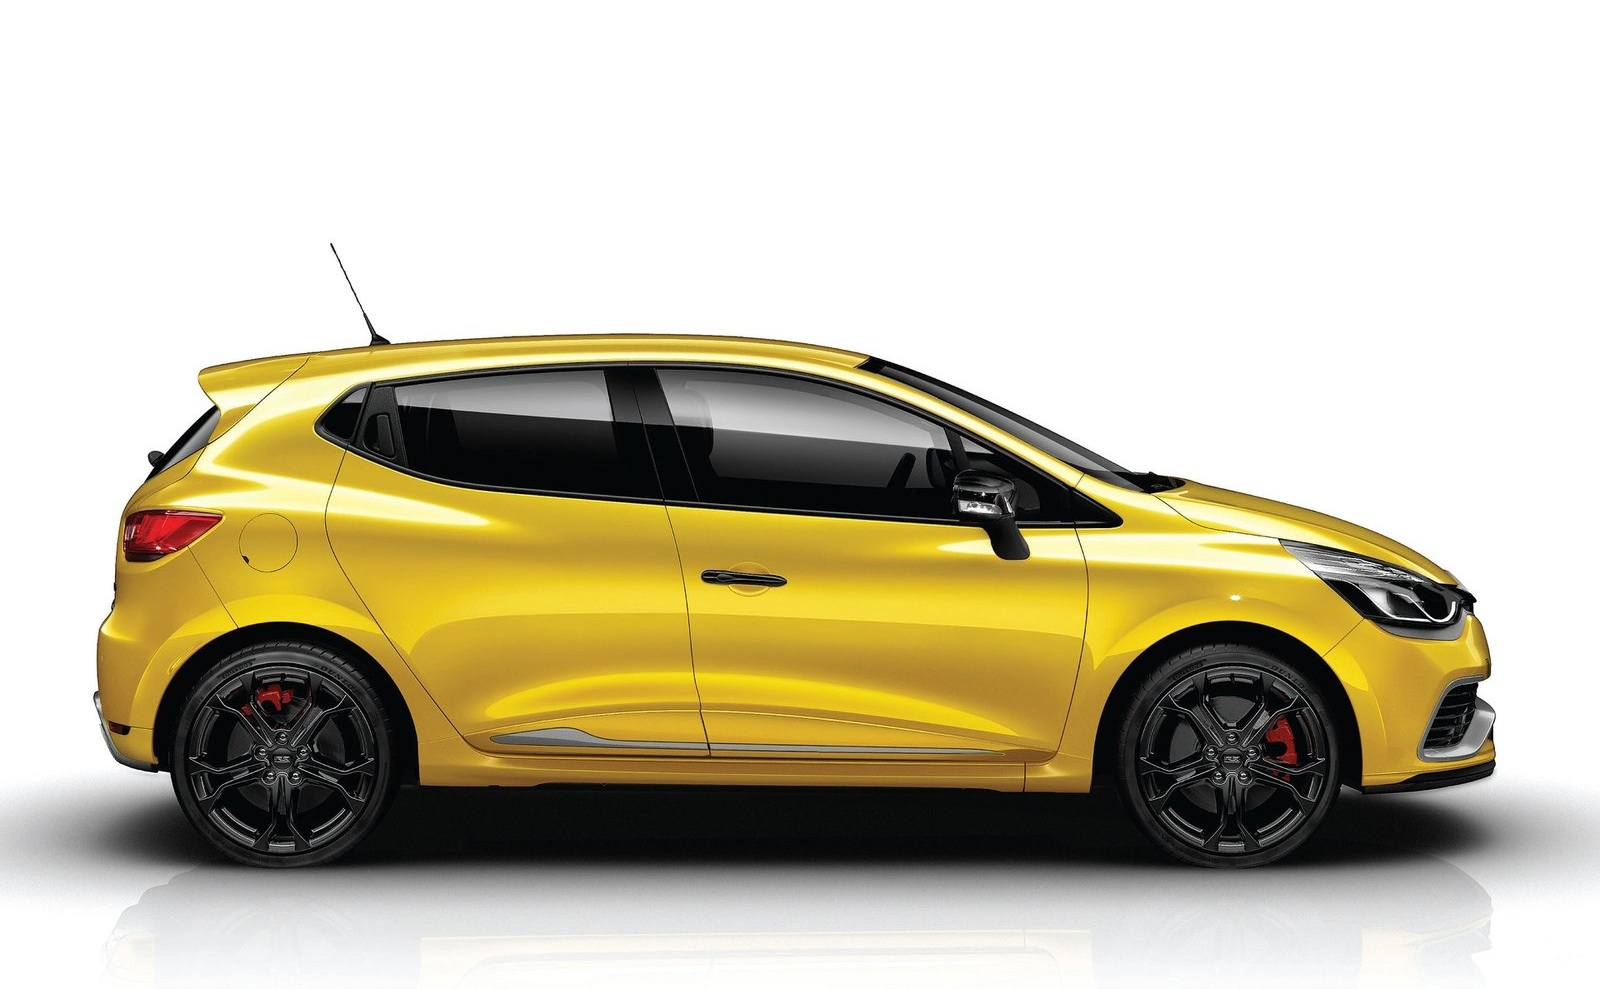 renault unveils new clio rs 200 turbo with double clutch autoevolution. Black Bedroom Furniture Sets. Home Design Ideas